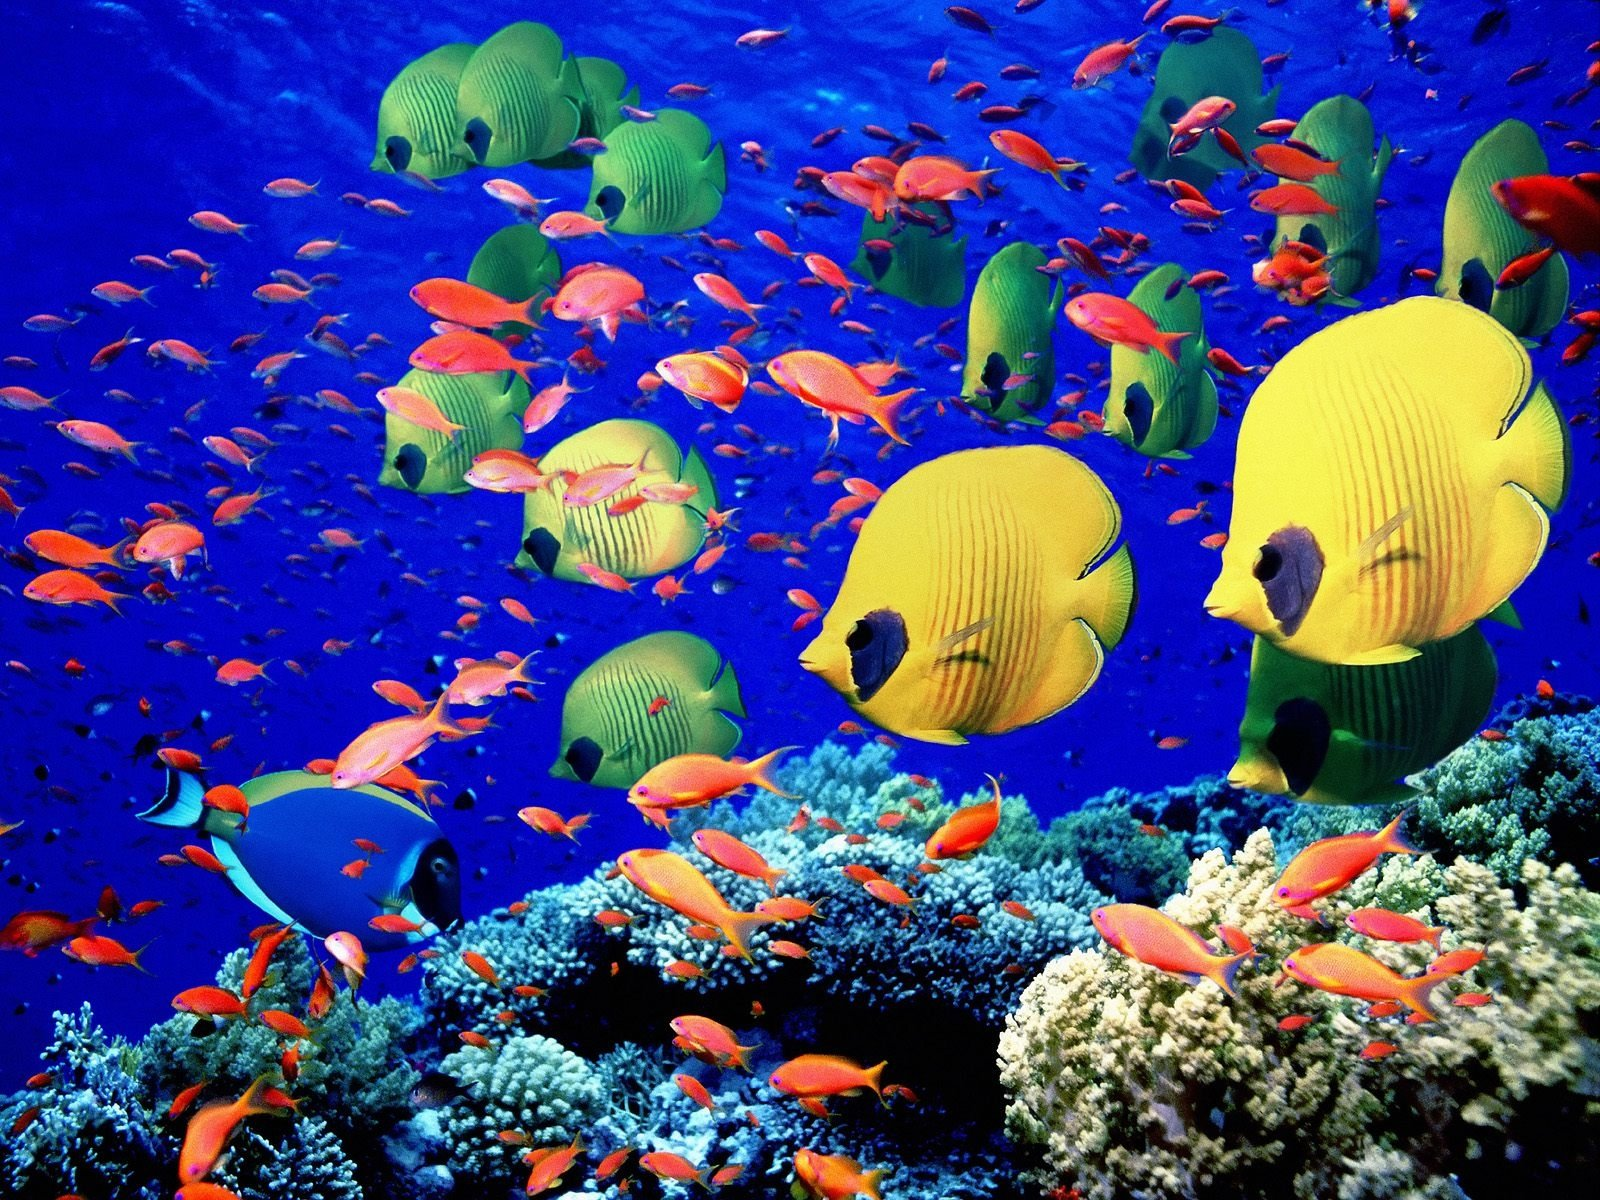 515 fish hd wallpapers | background images - wallpaper abyss